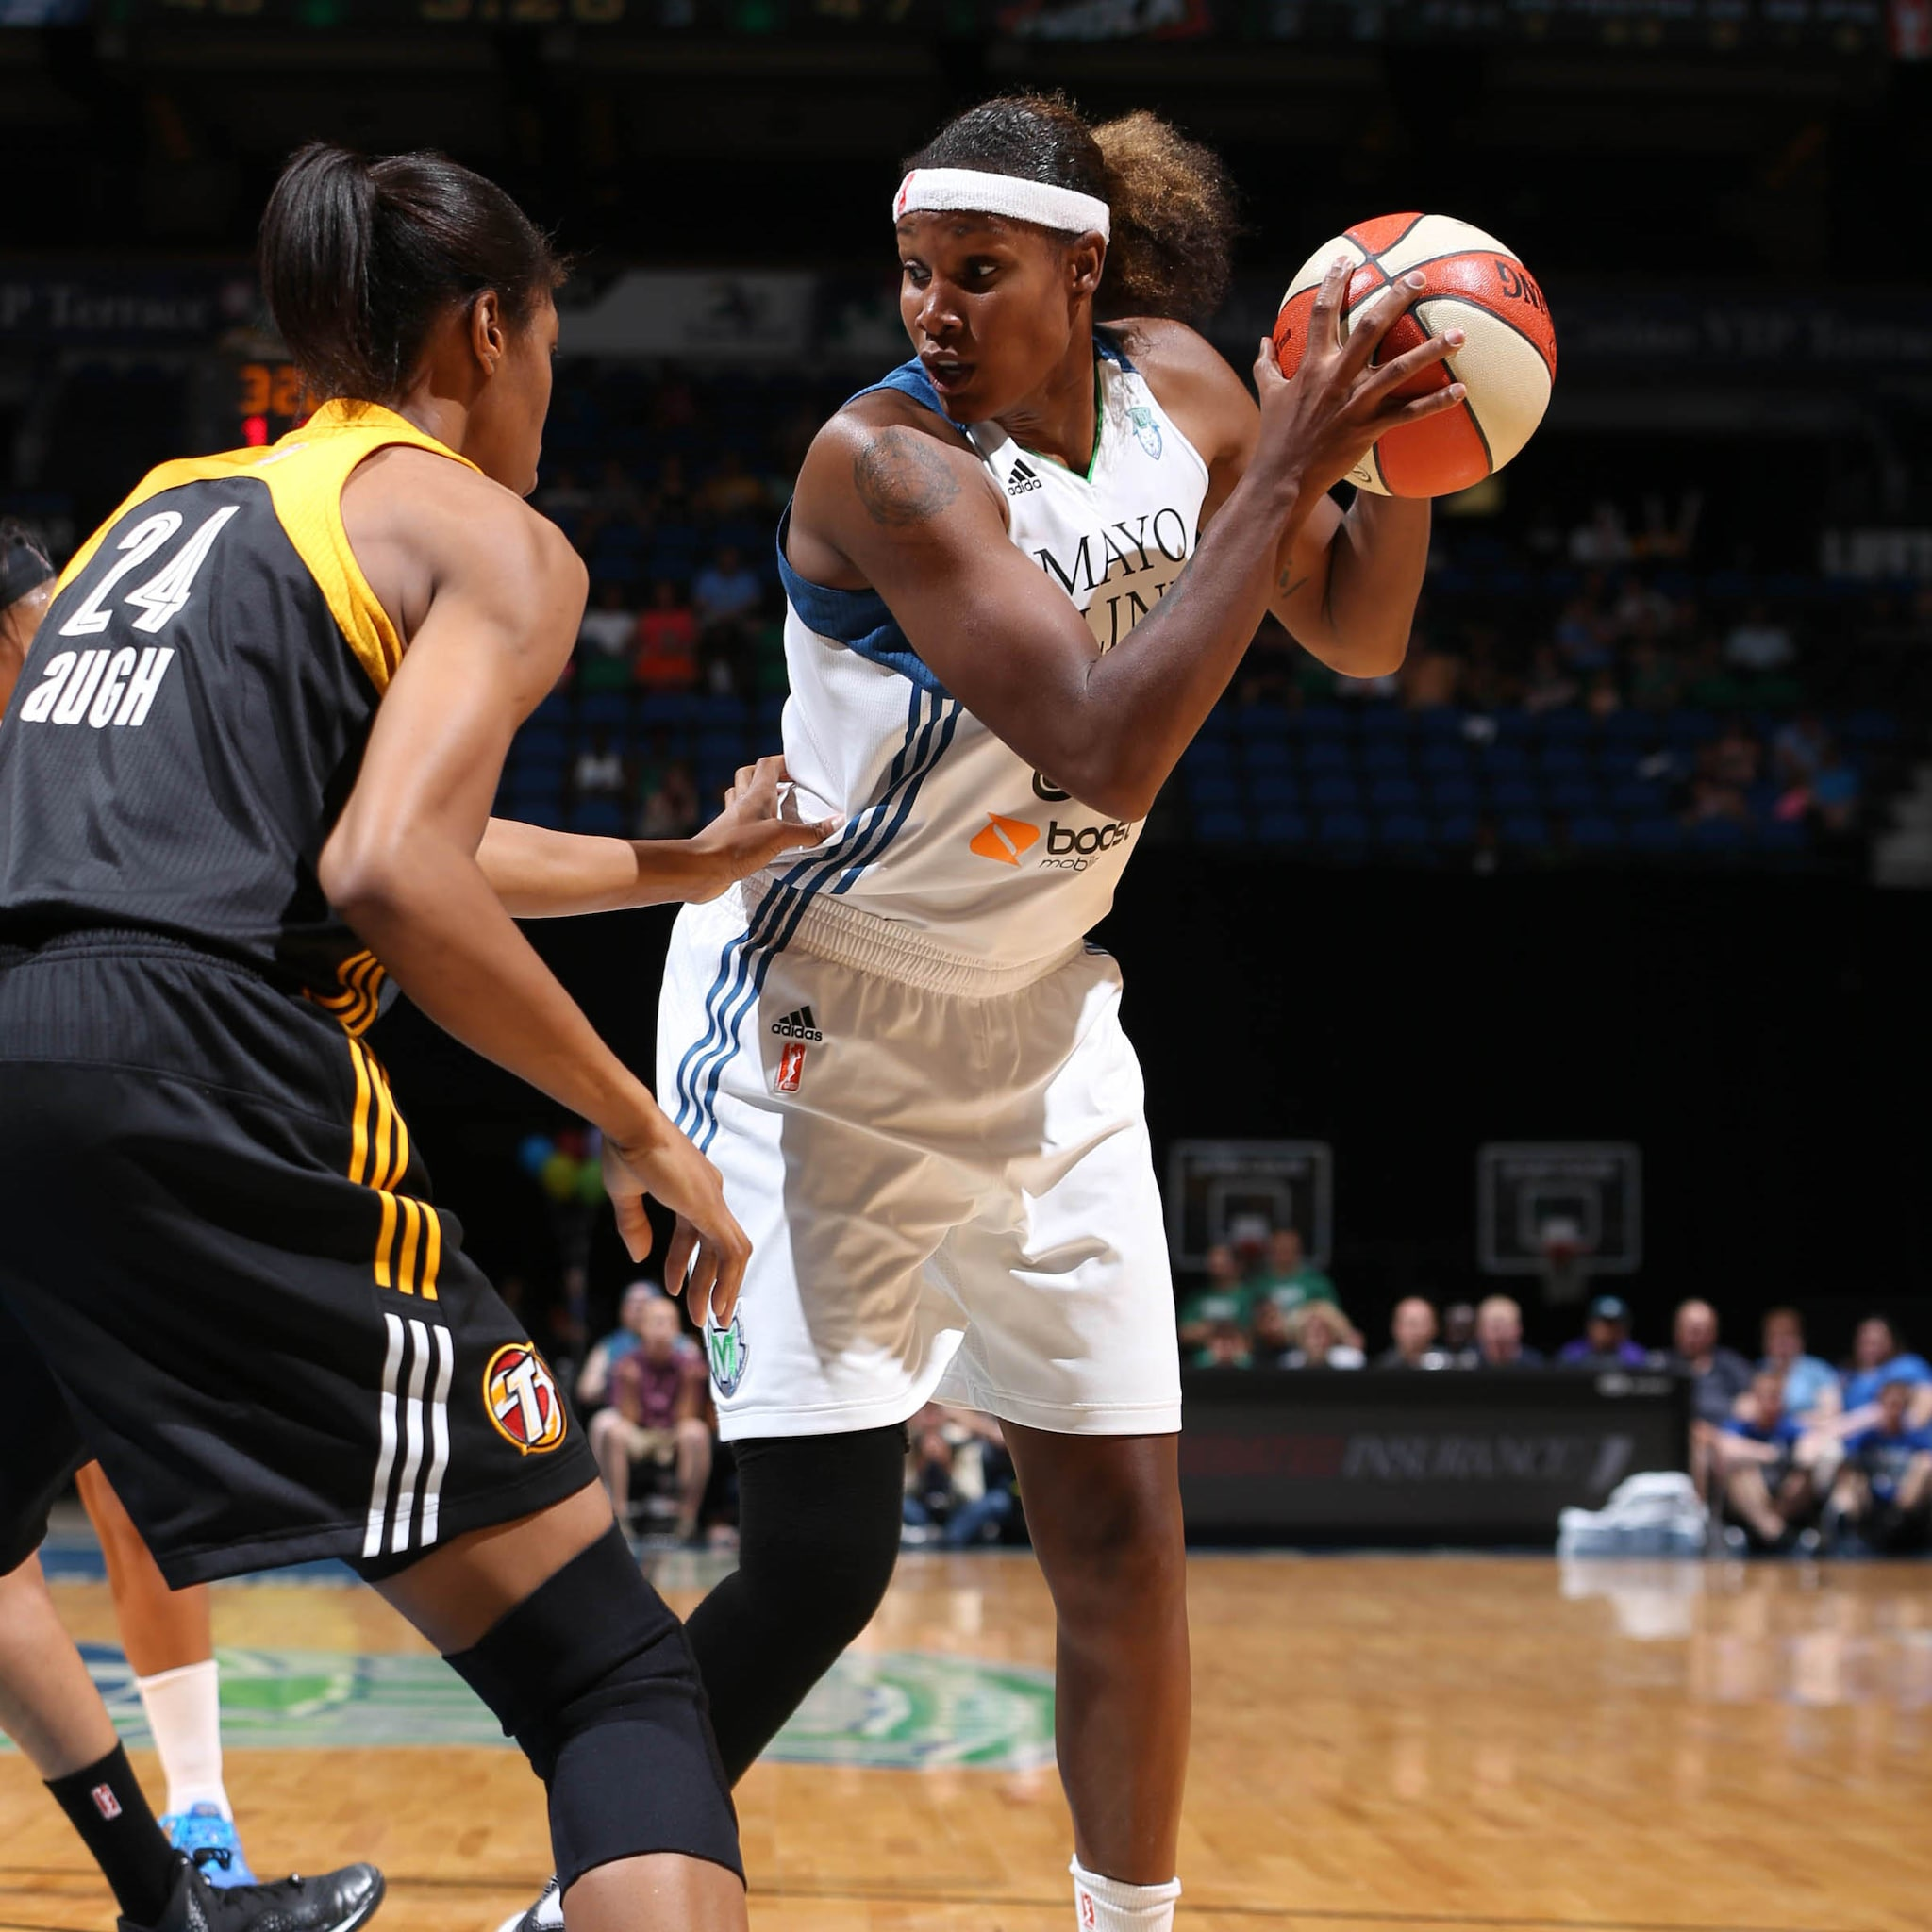 Lynx forward Rebekkah Brunson had a solid night against the Shock, scoring a team-high 18 points to go with nine rebounds.